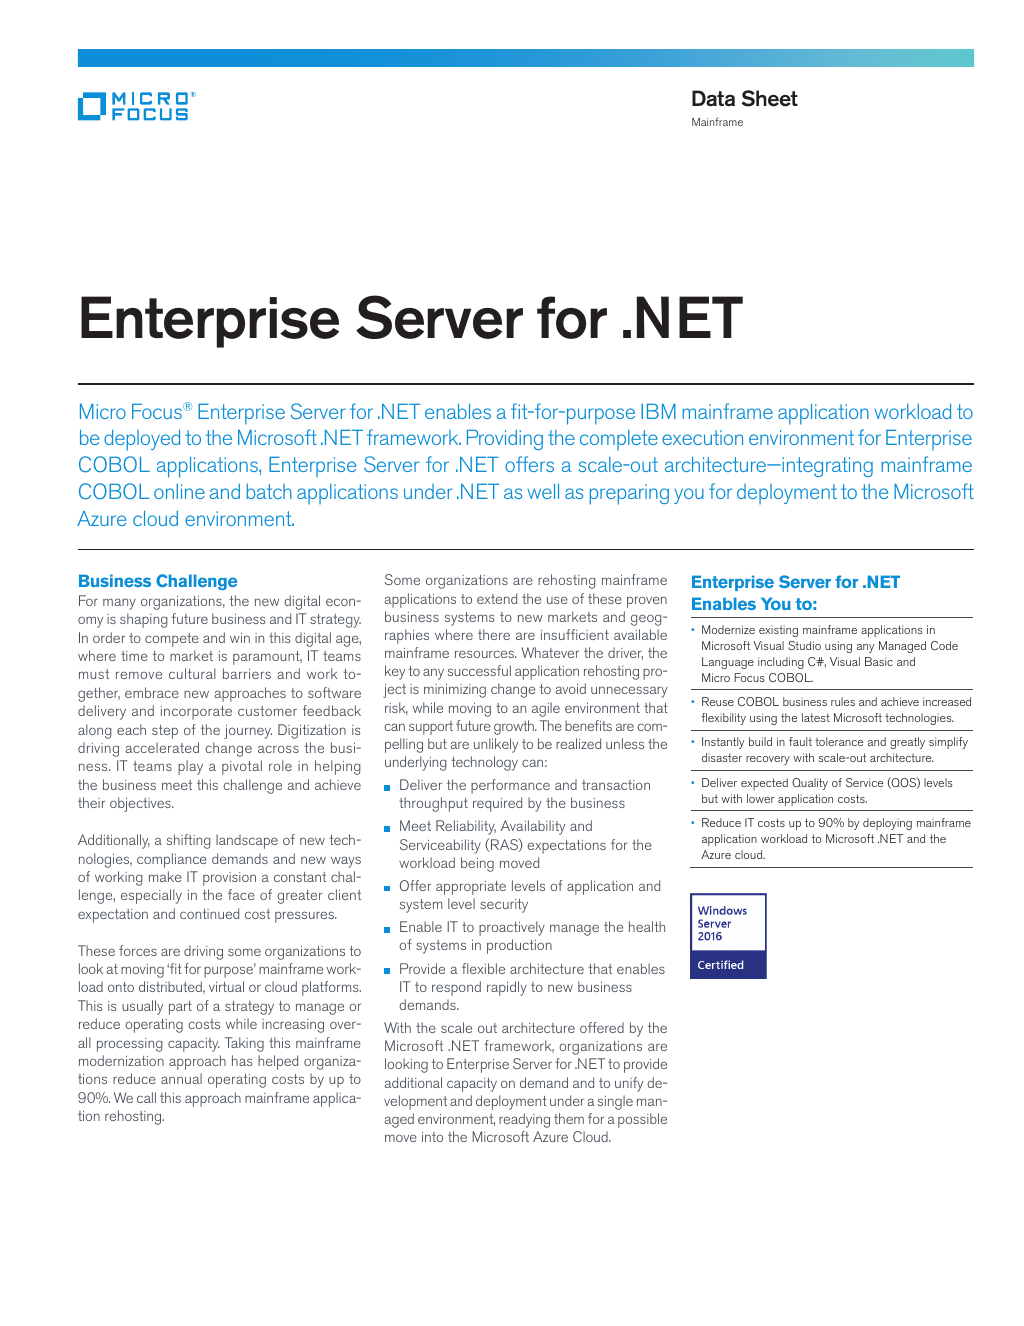 Enterprise Server For